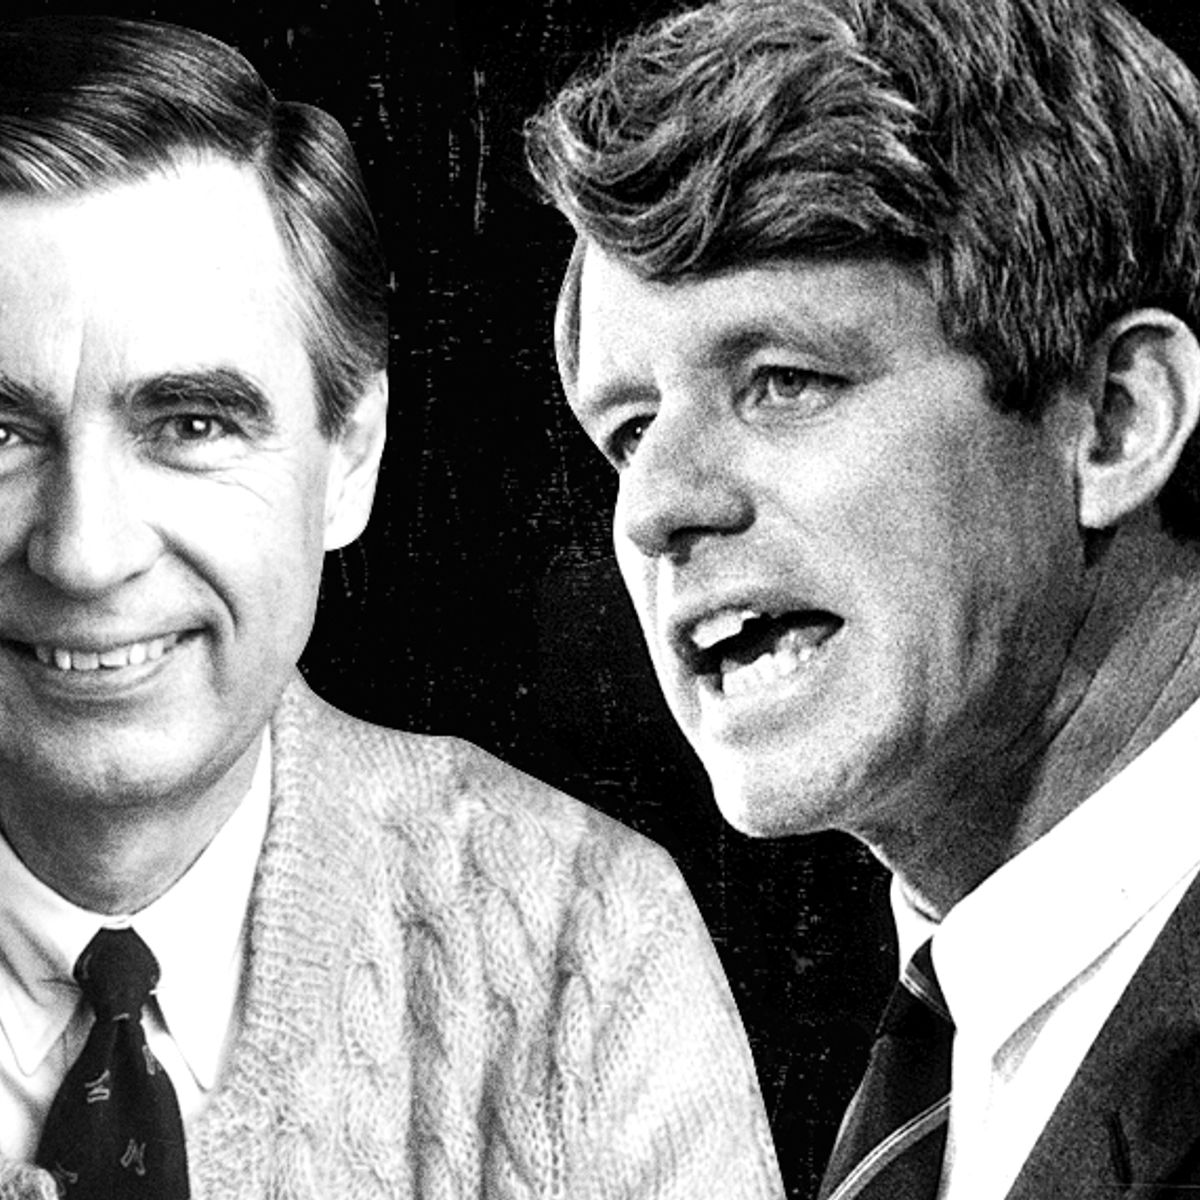 Robert F Kennedy And Mister Rogers Two Icons Of Masculine Empathy Sorely Missed Today Salon Com